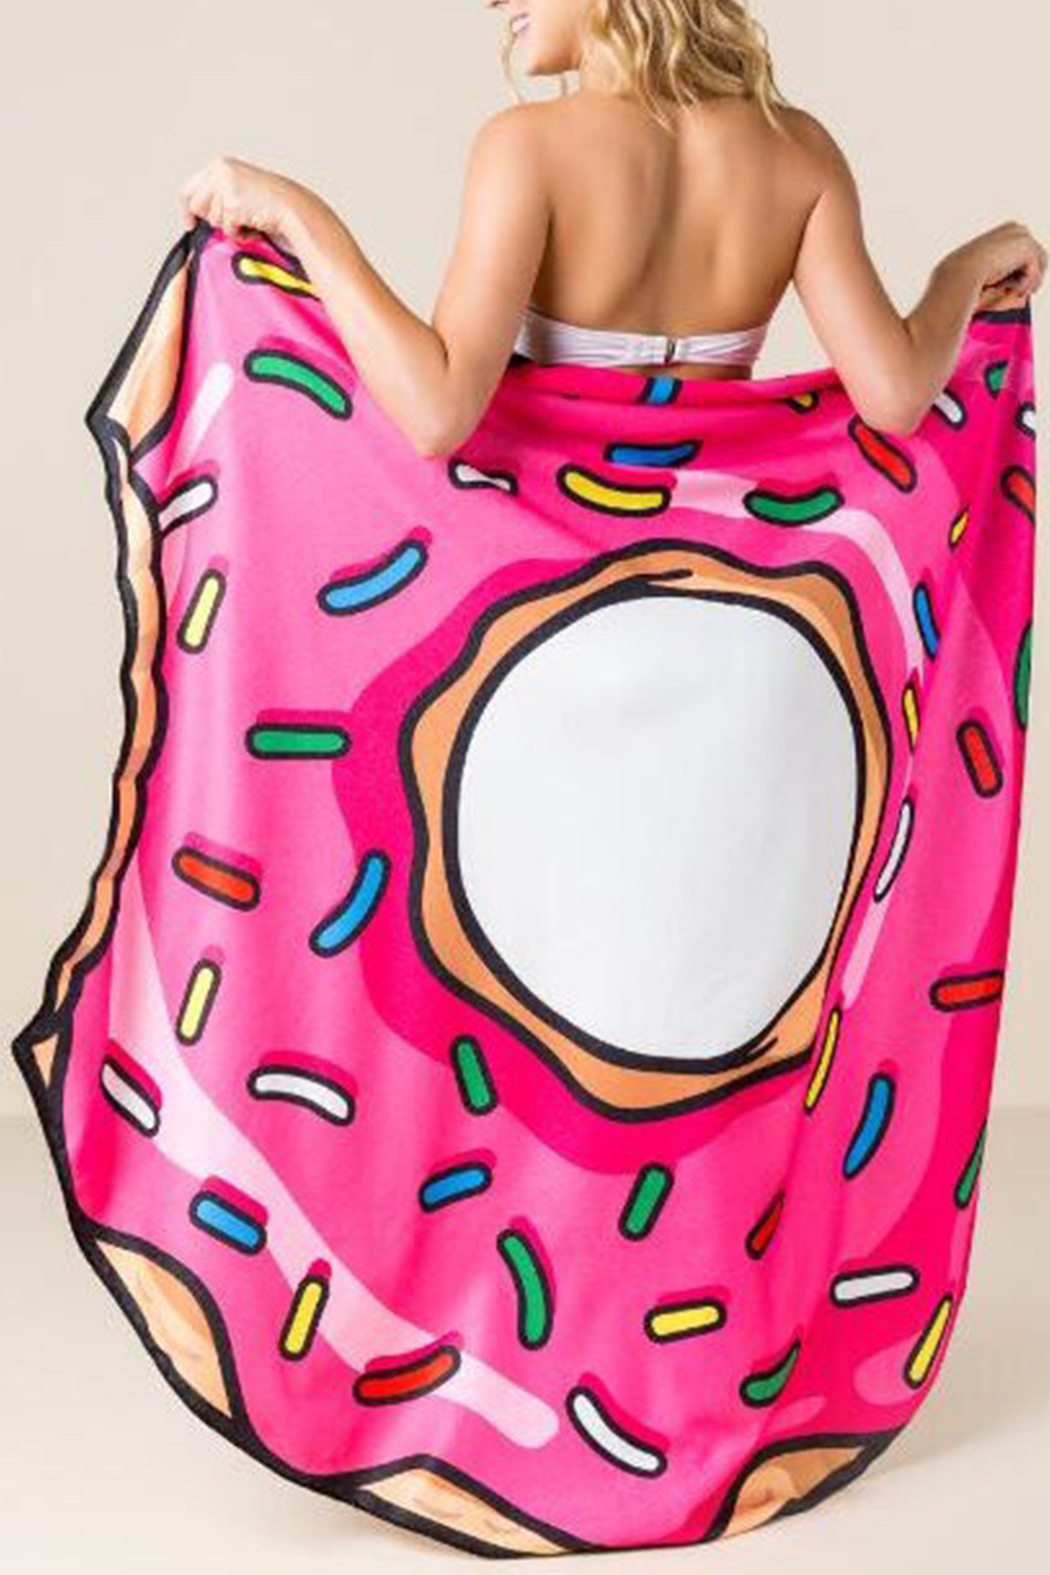 e25c0d2c38f BigMouth Inc Donut Beach Blanket Towel from Pennsylvania by The ...